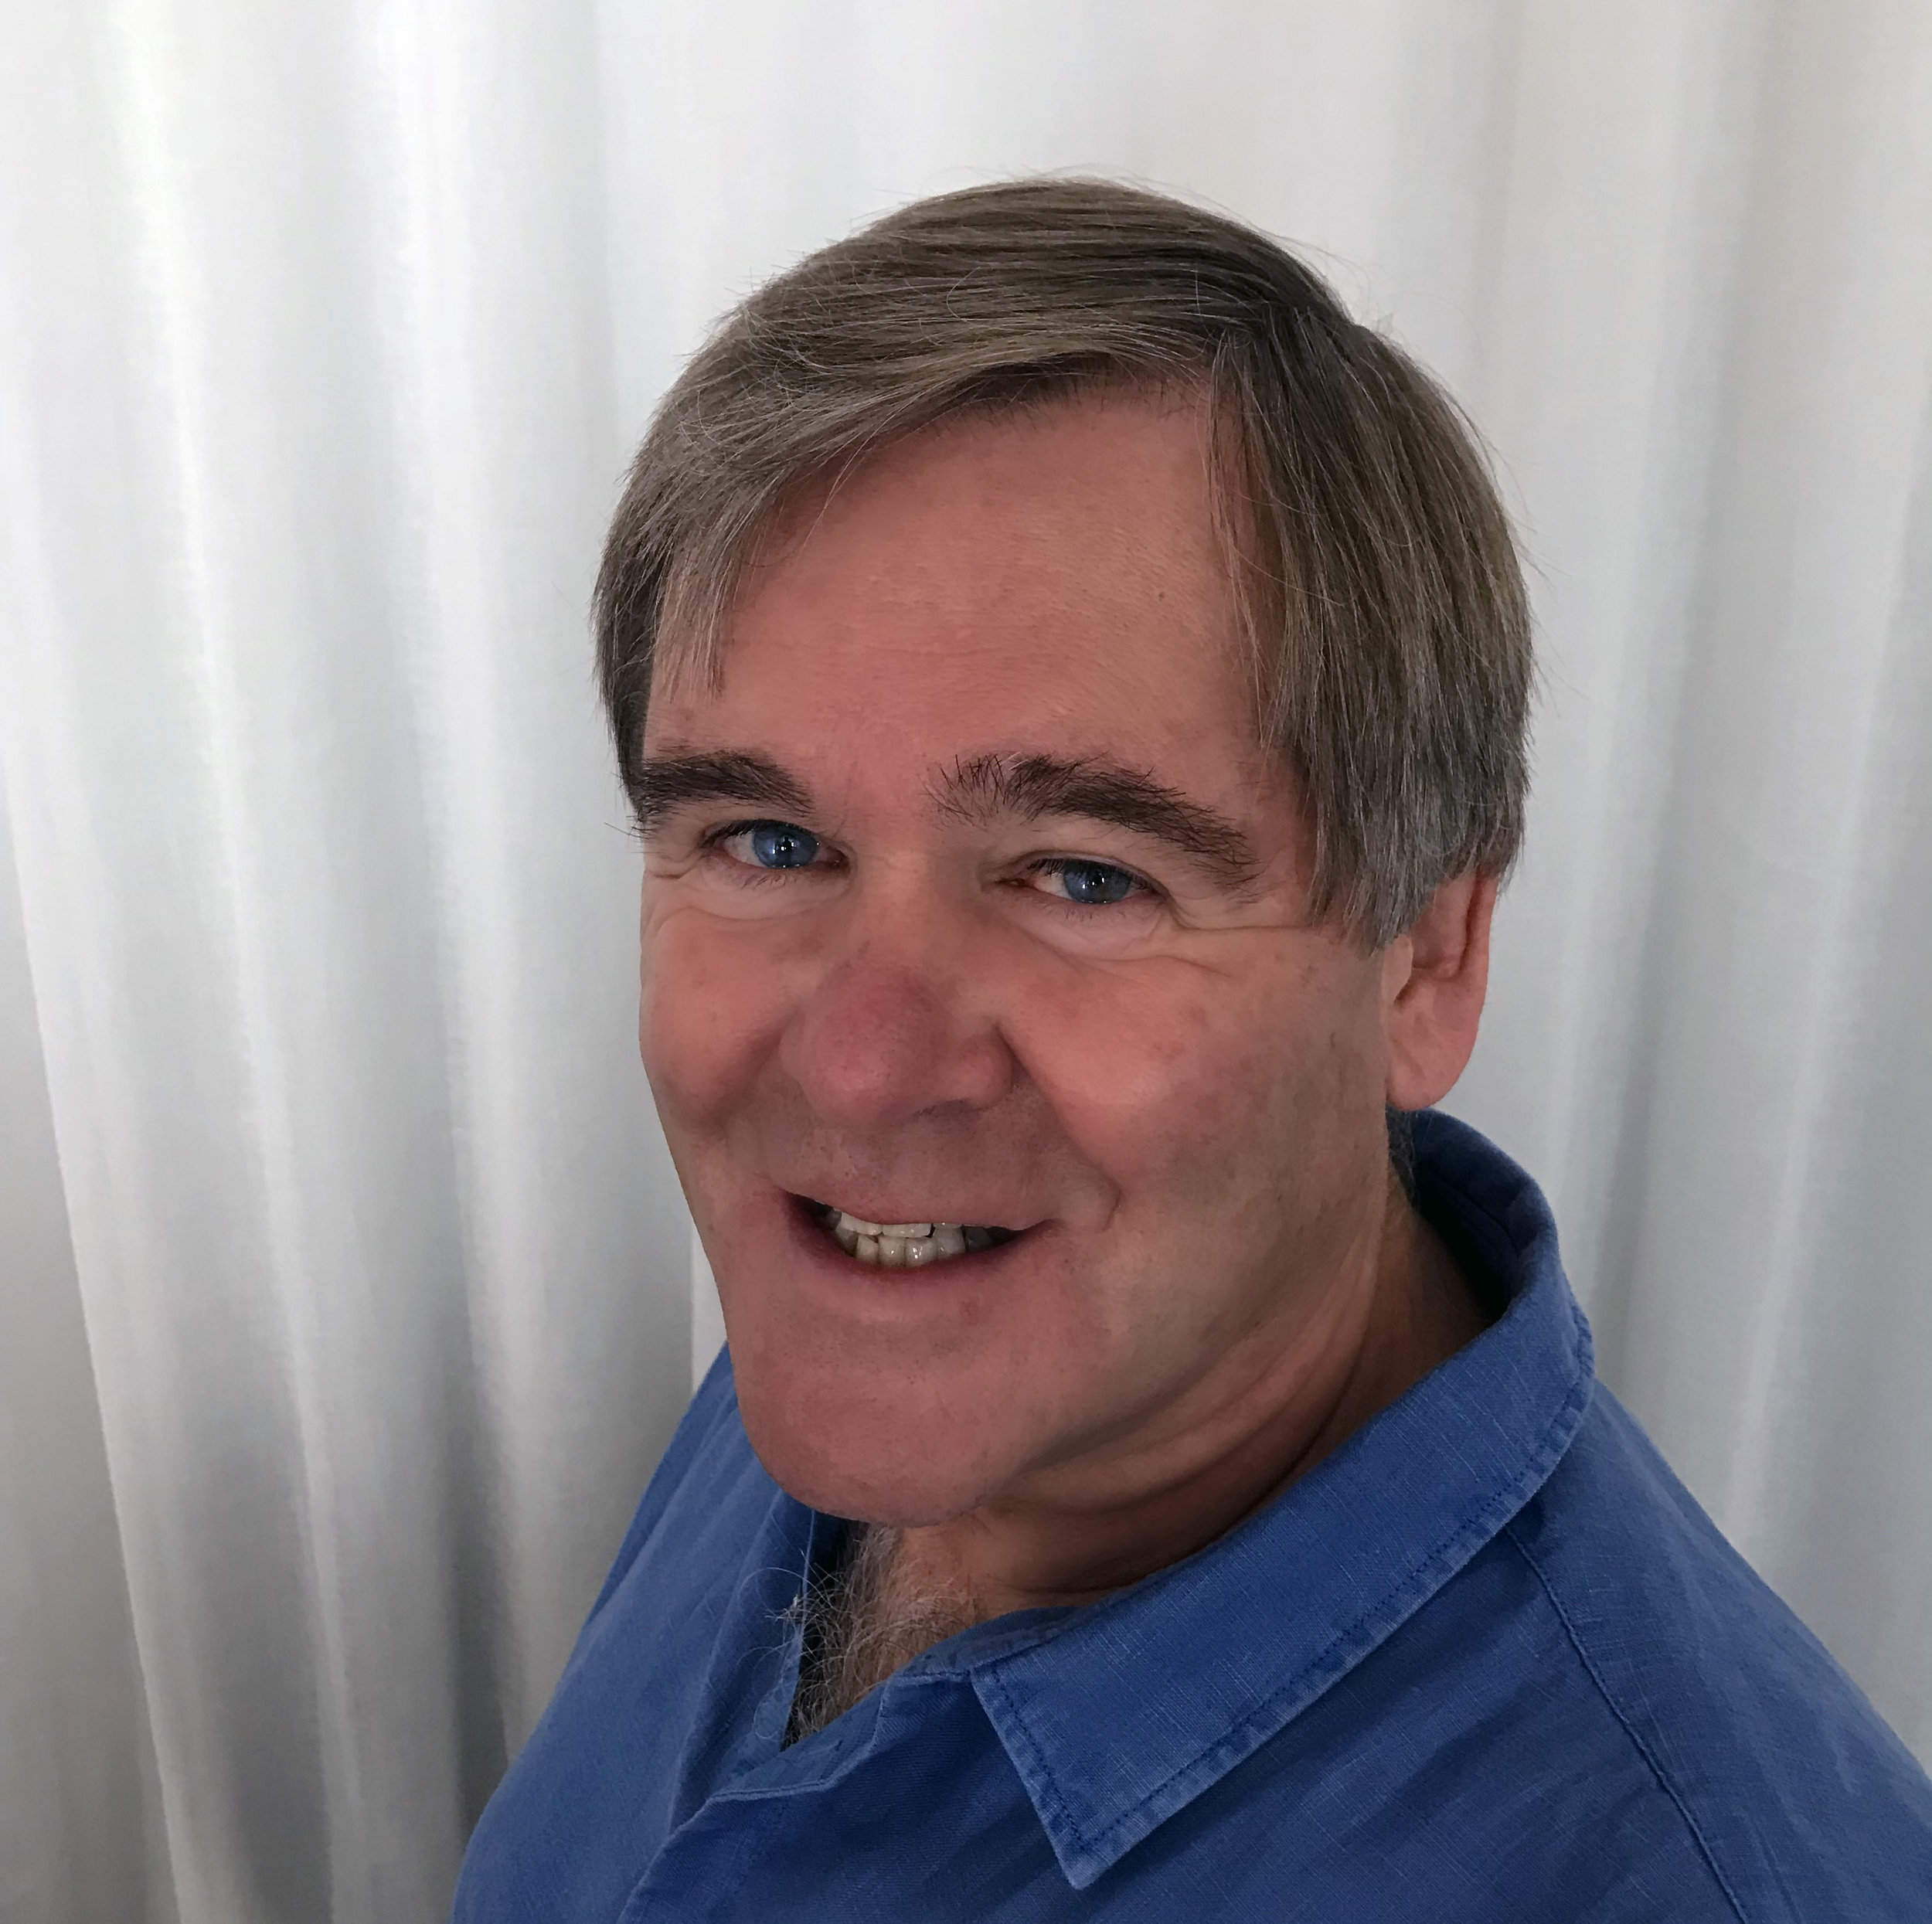 John Hudson is a landscape architect based in Hawke's Bay. His consultancy focusses on landscape assessment and expert evidence for Council hearings and Environment Court appeals. He is a qualified as a hearings commissioner and has sat on a number of large hearings across the country.